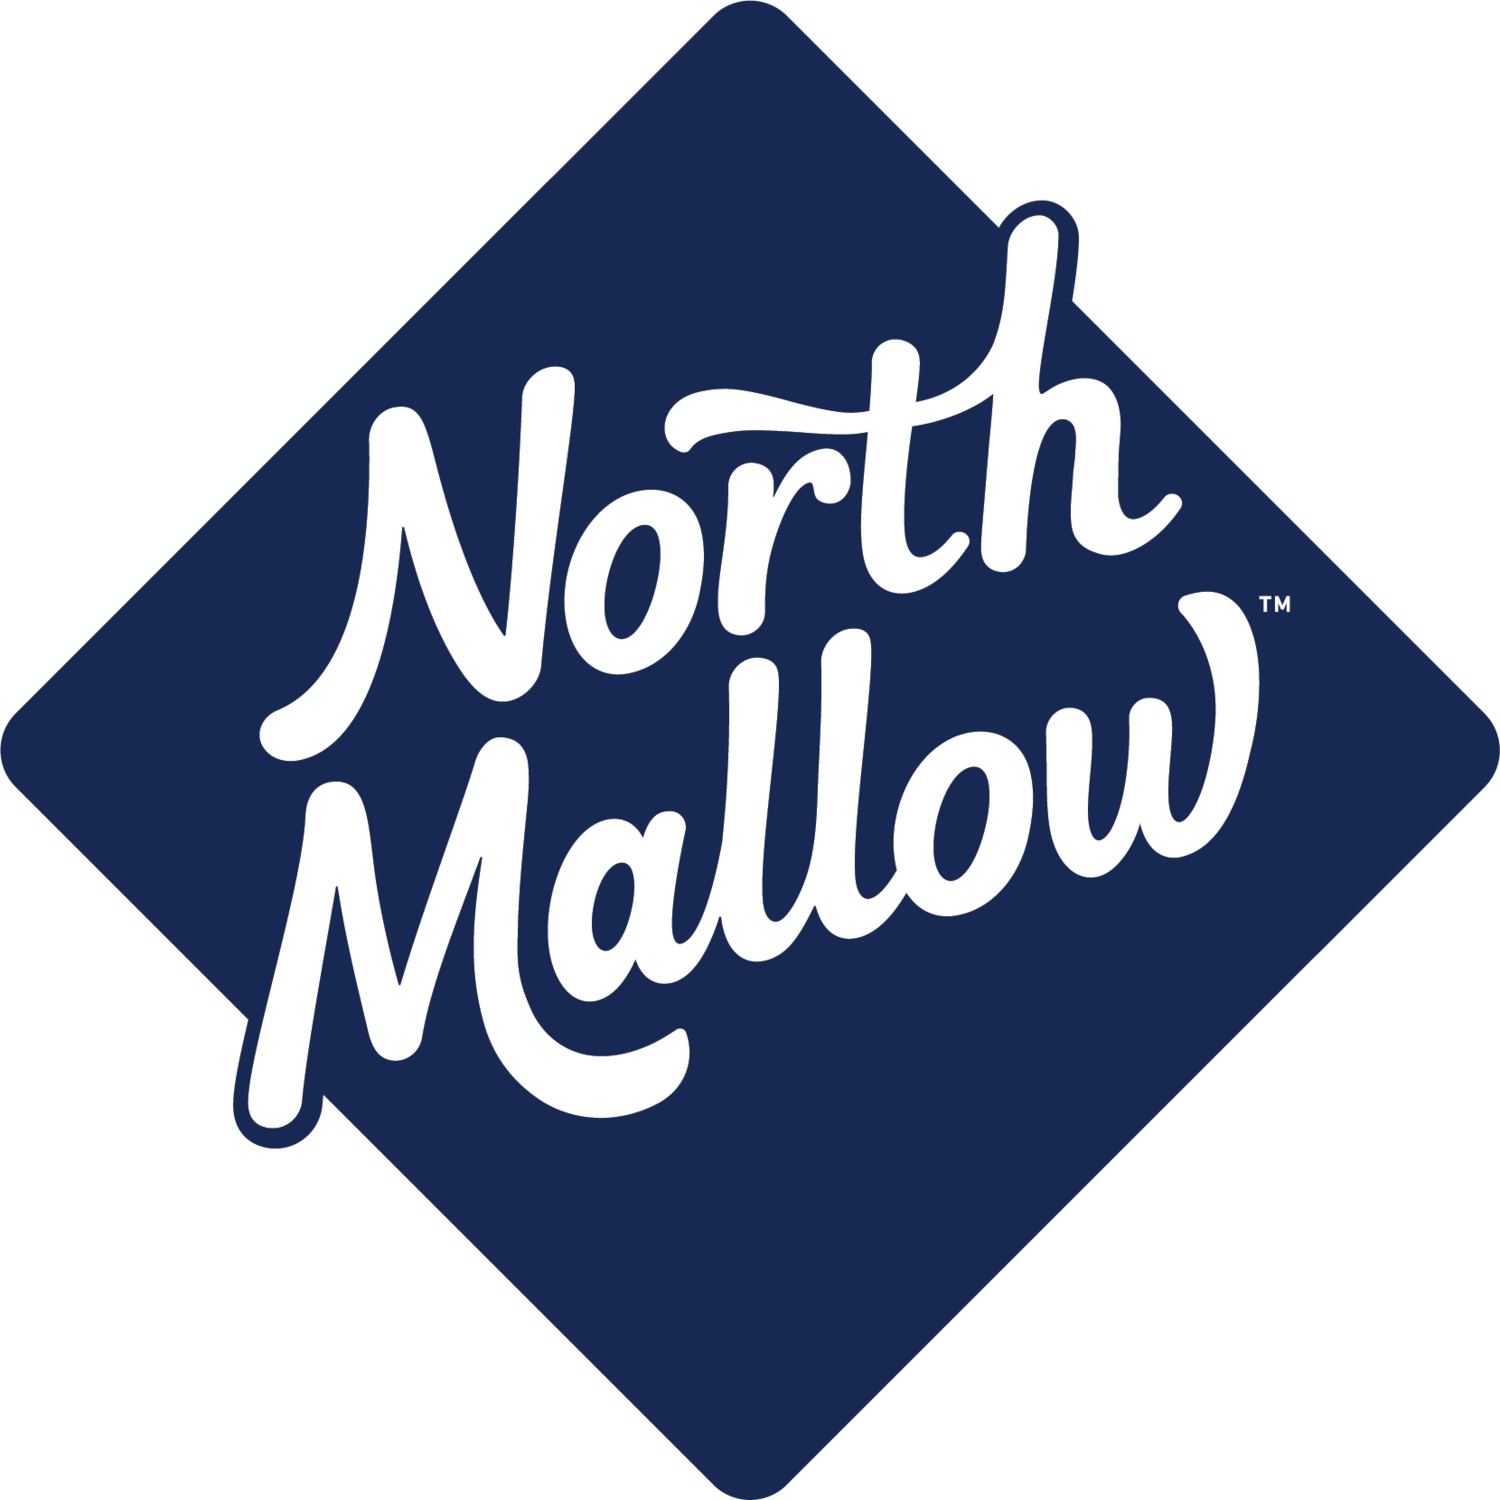 North Mallow